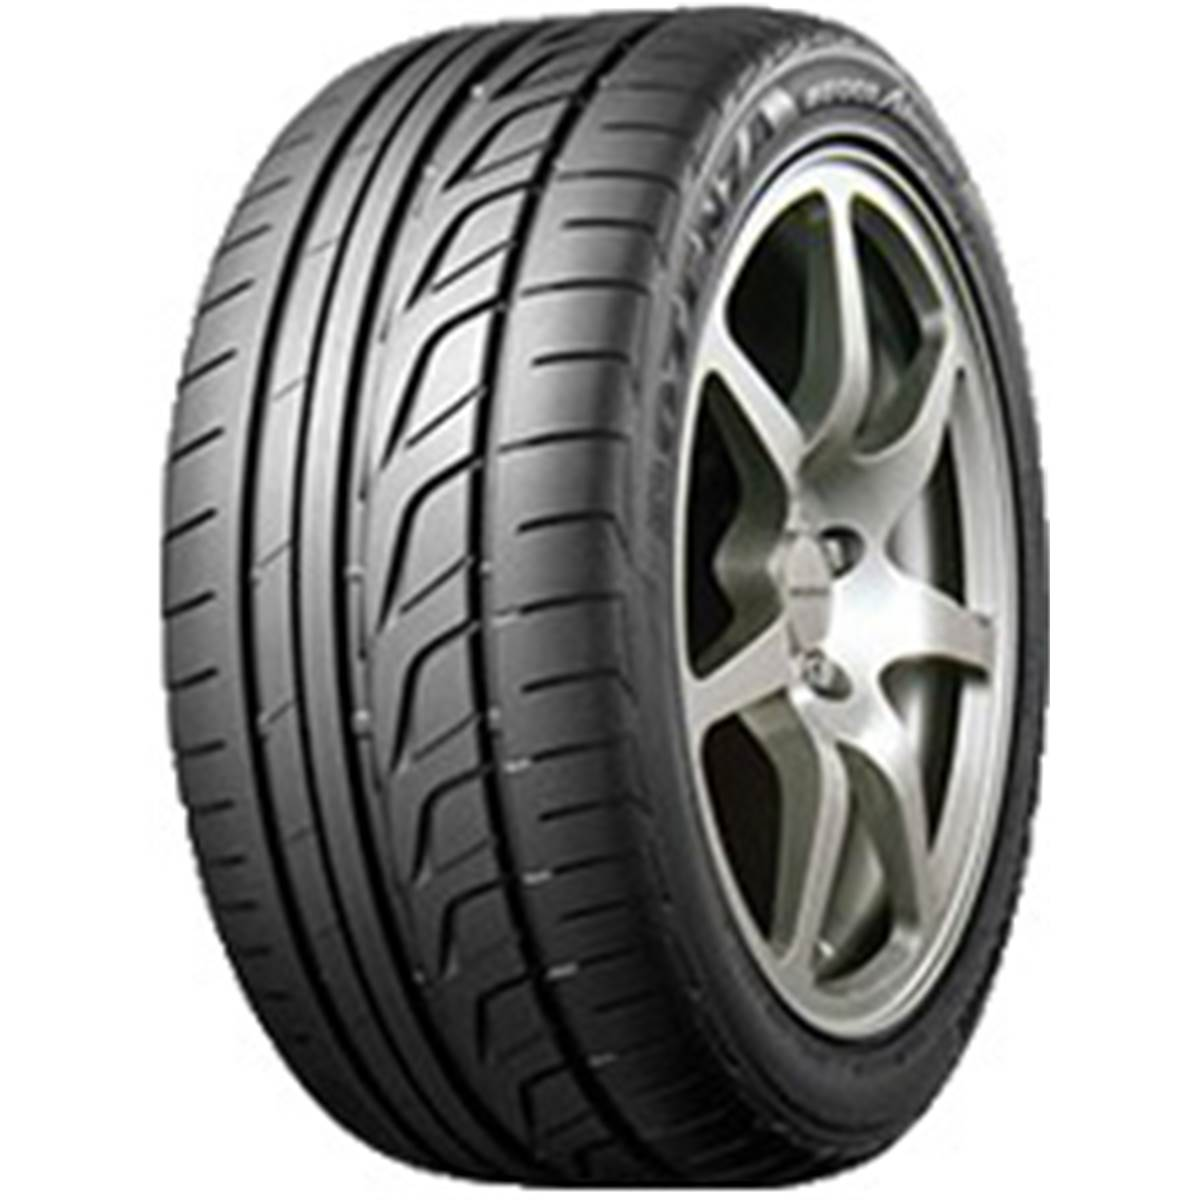 Pneu Bridgestone 205/50R17 93W Potenza Adrenalin Re002 XL